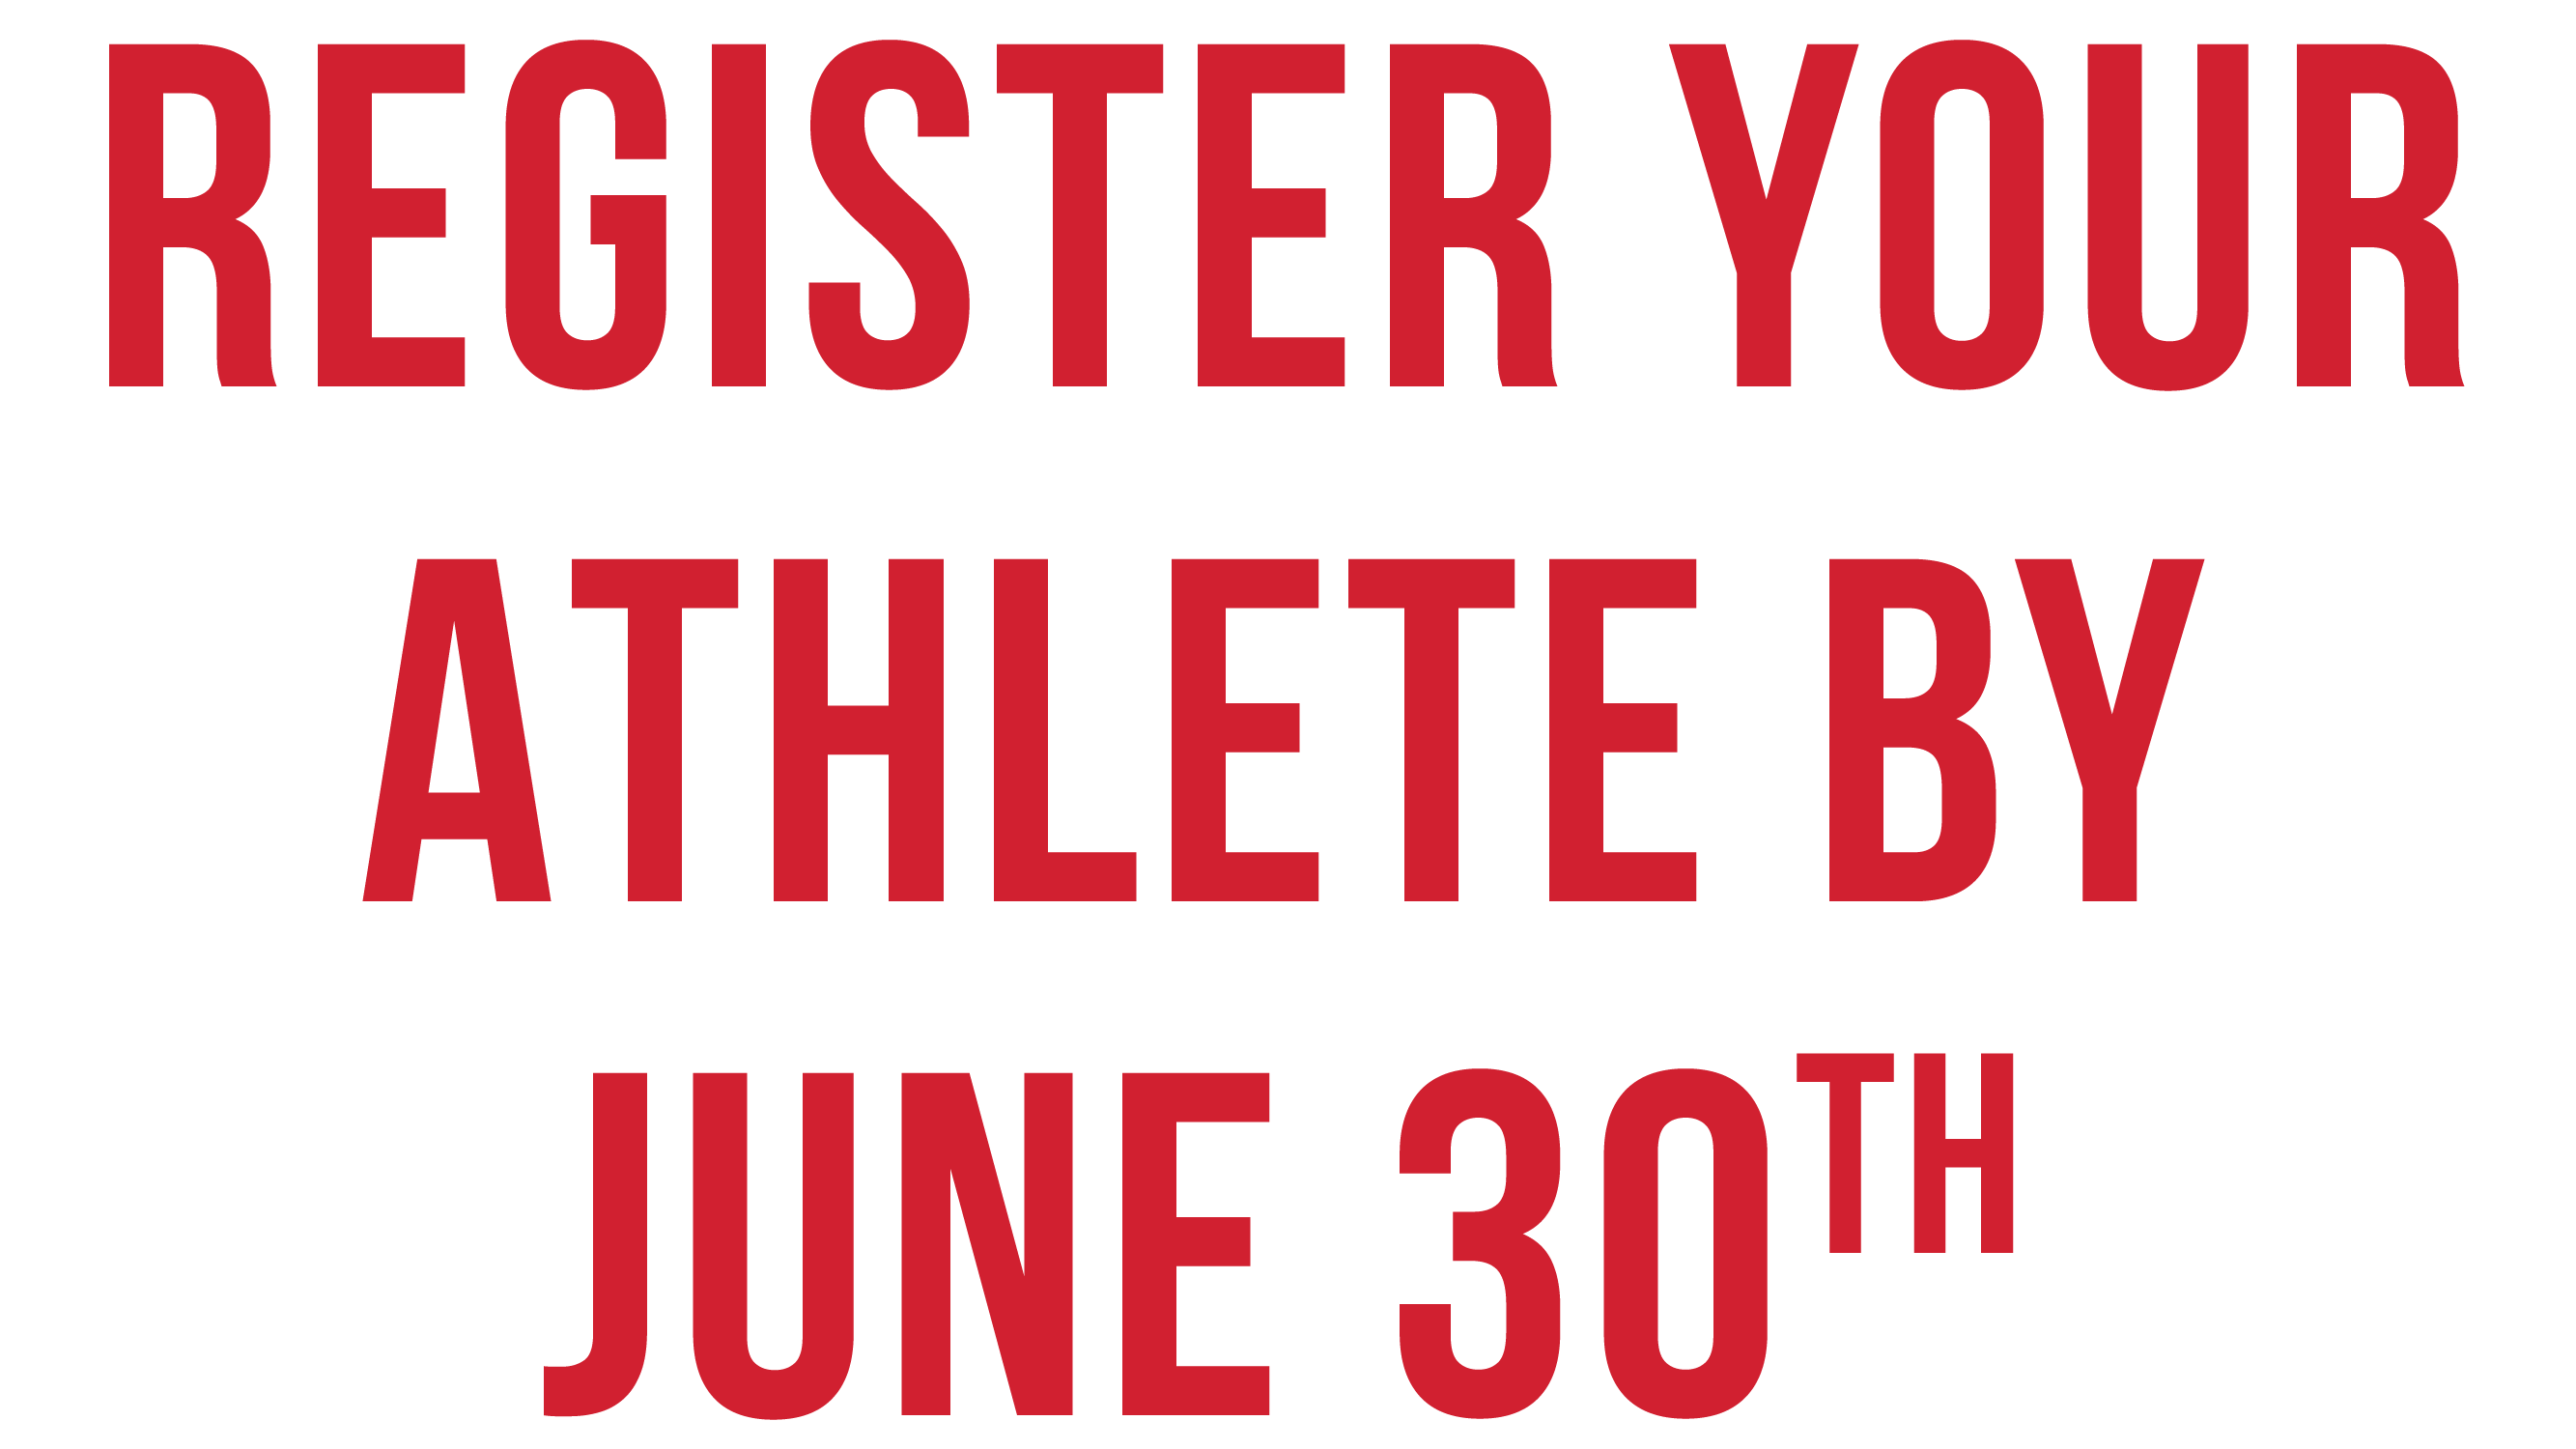 Register Your Athlete Online By June 30th